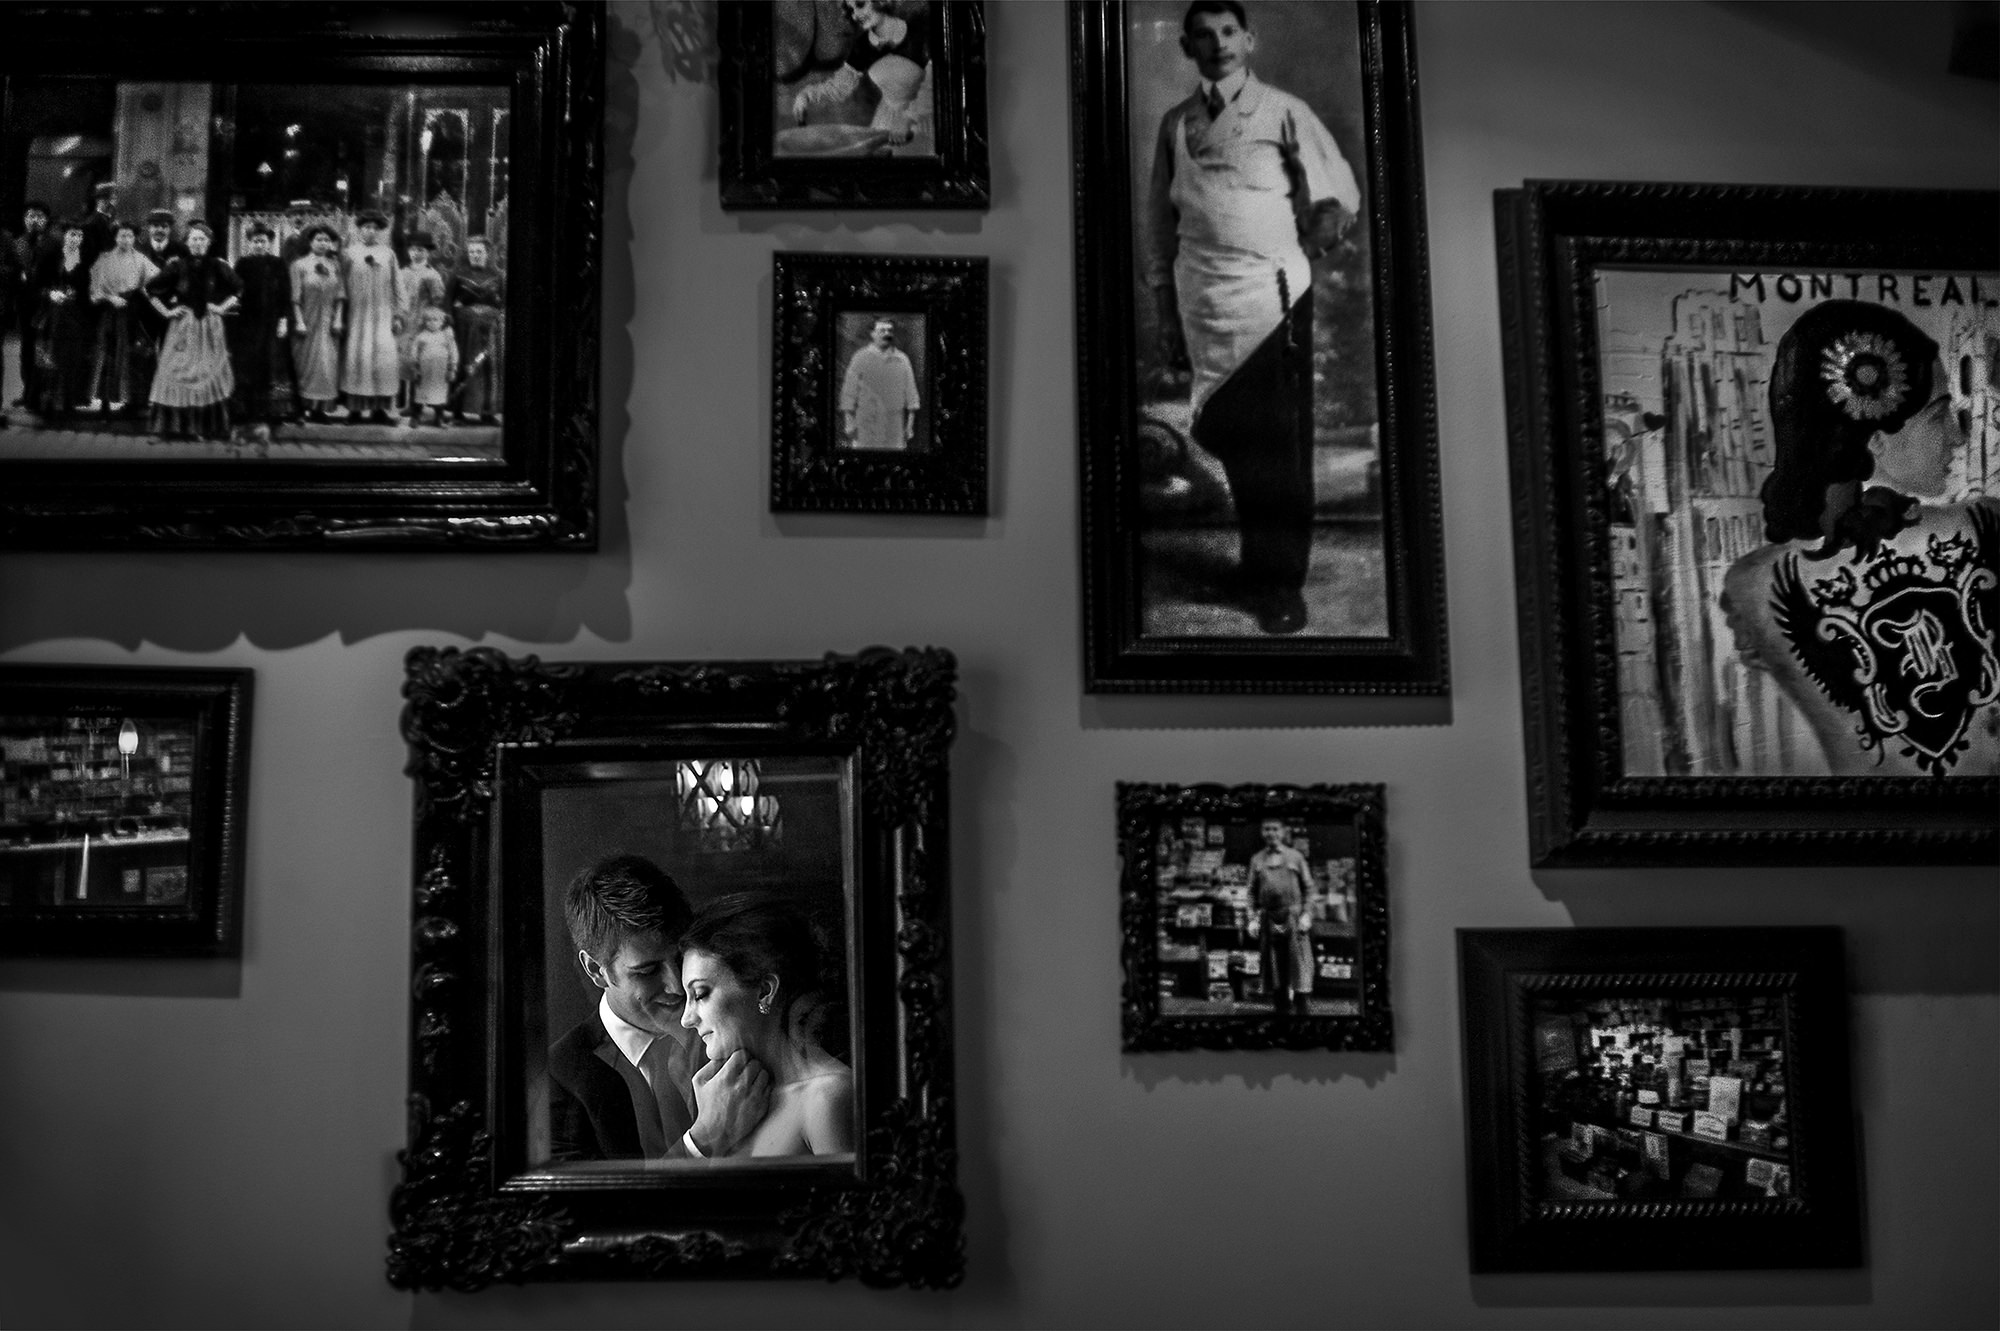 Couple reflected in mirror on wall of pictures - photographed by David and Sherry - Canada